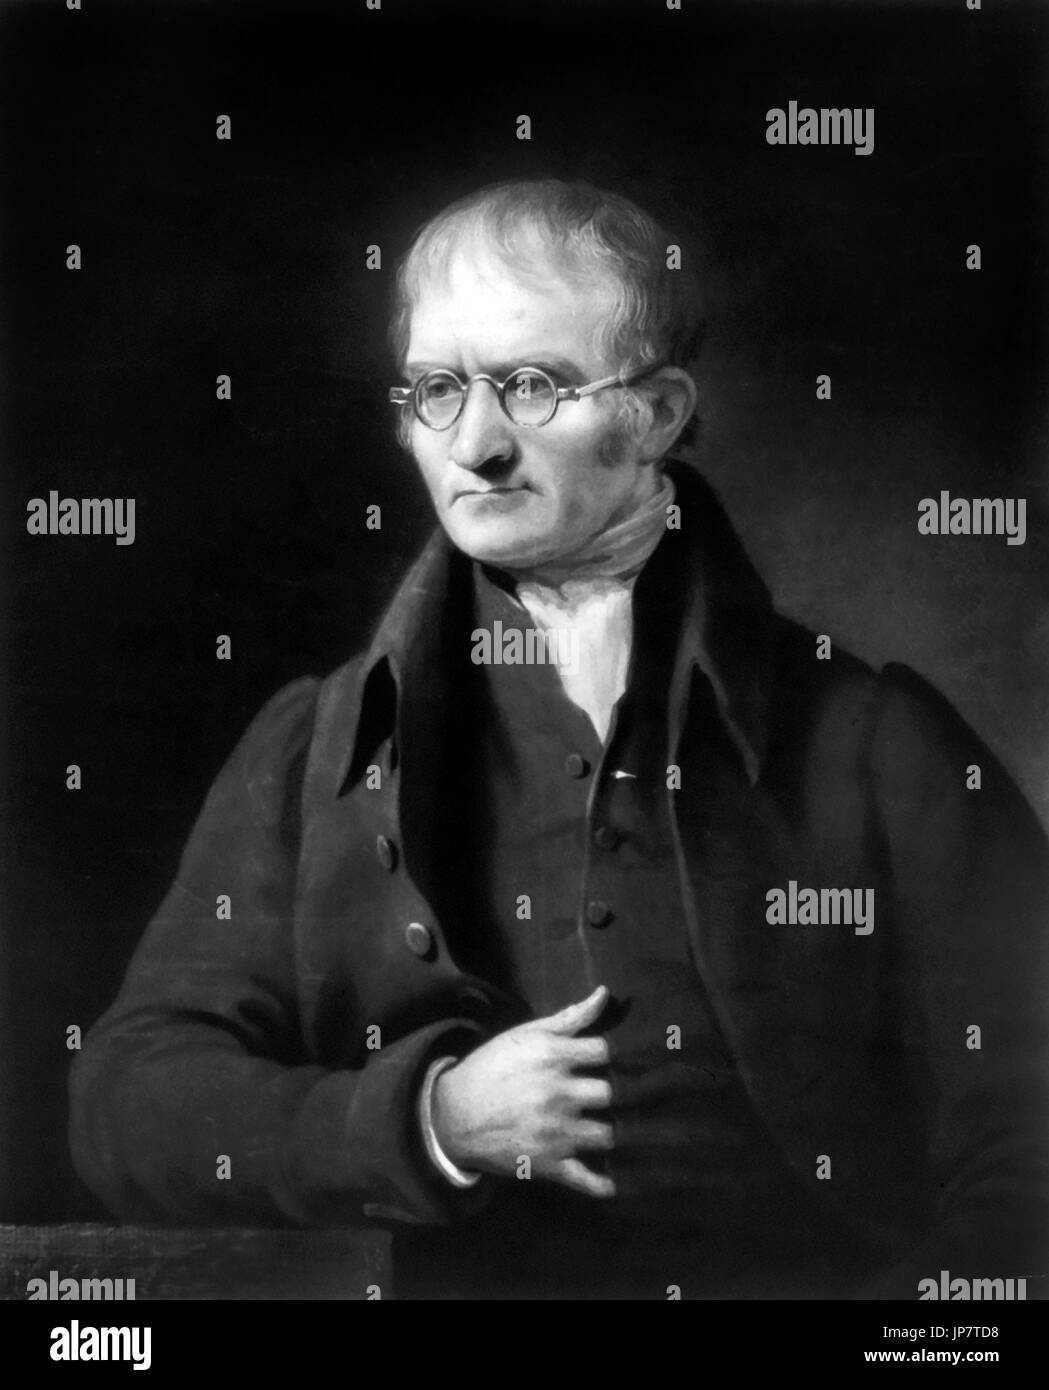 John Dalton (1766-1844), chemist and pioneer in nuclear physics. Engraving by Charles Turner from a portrait by Stock Photo